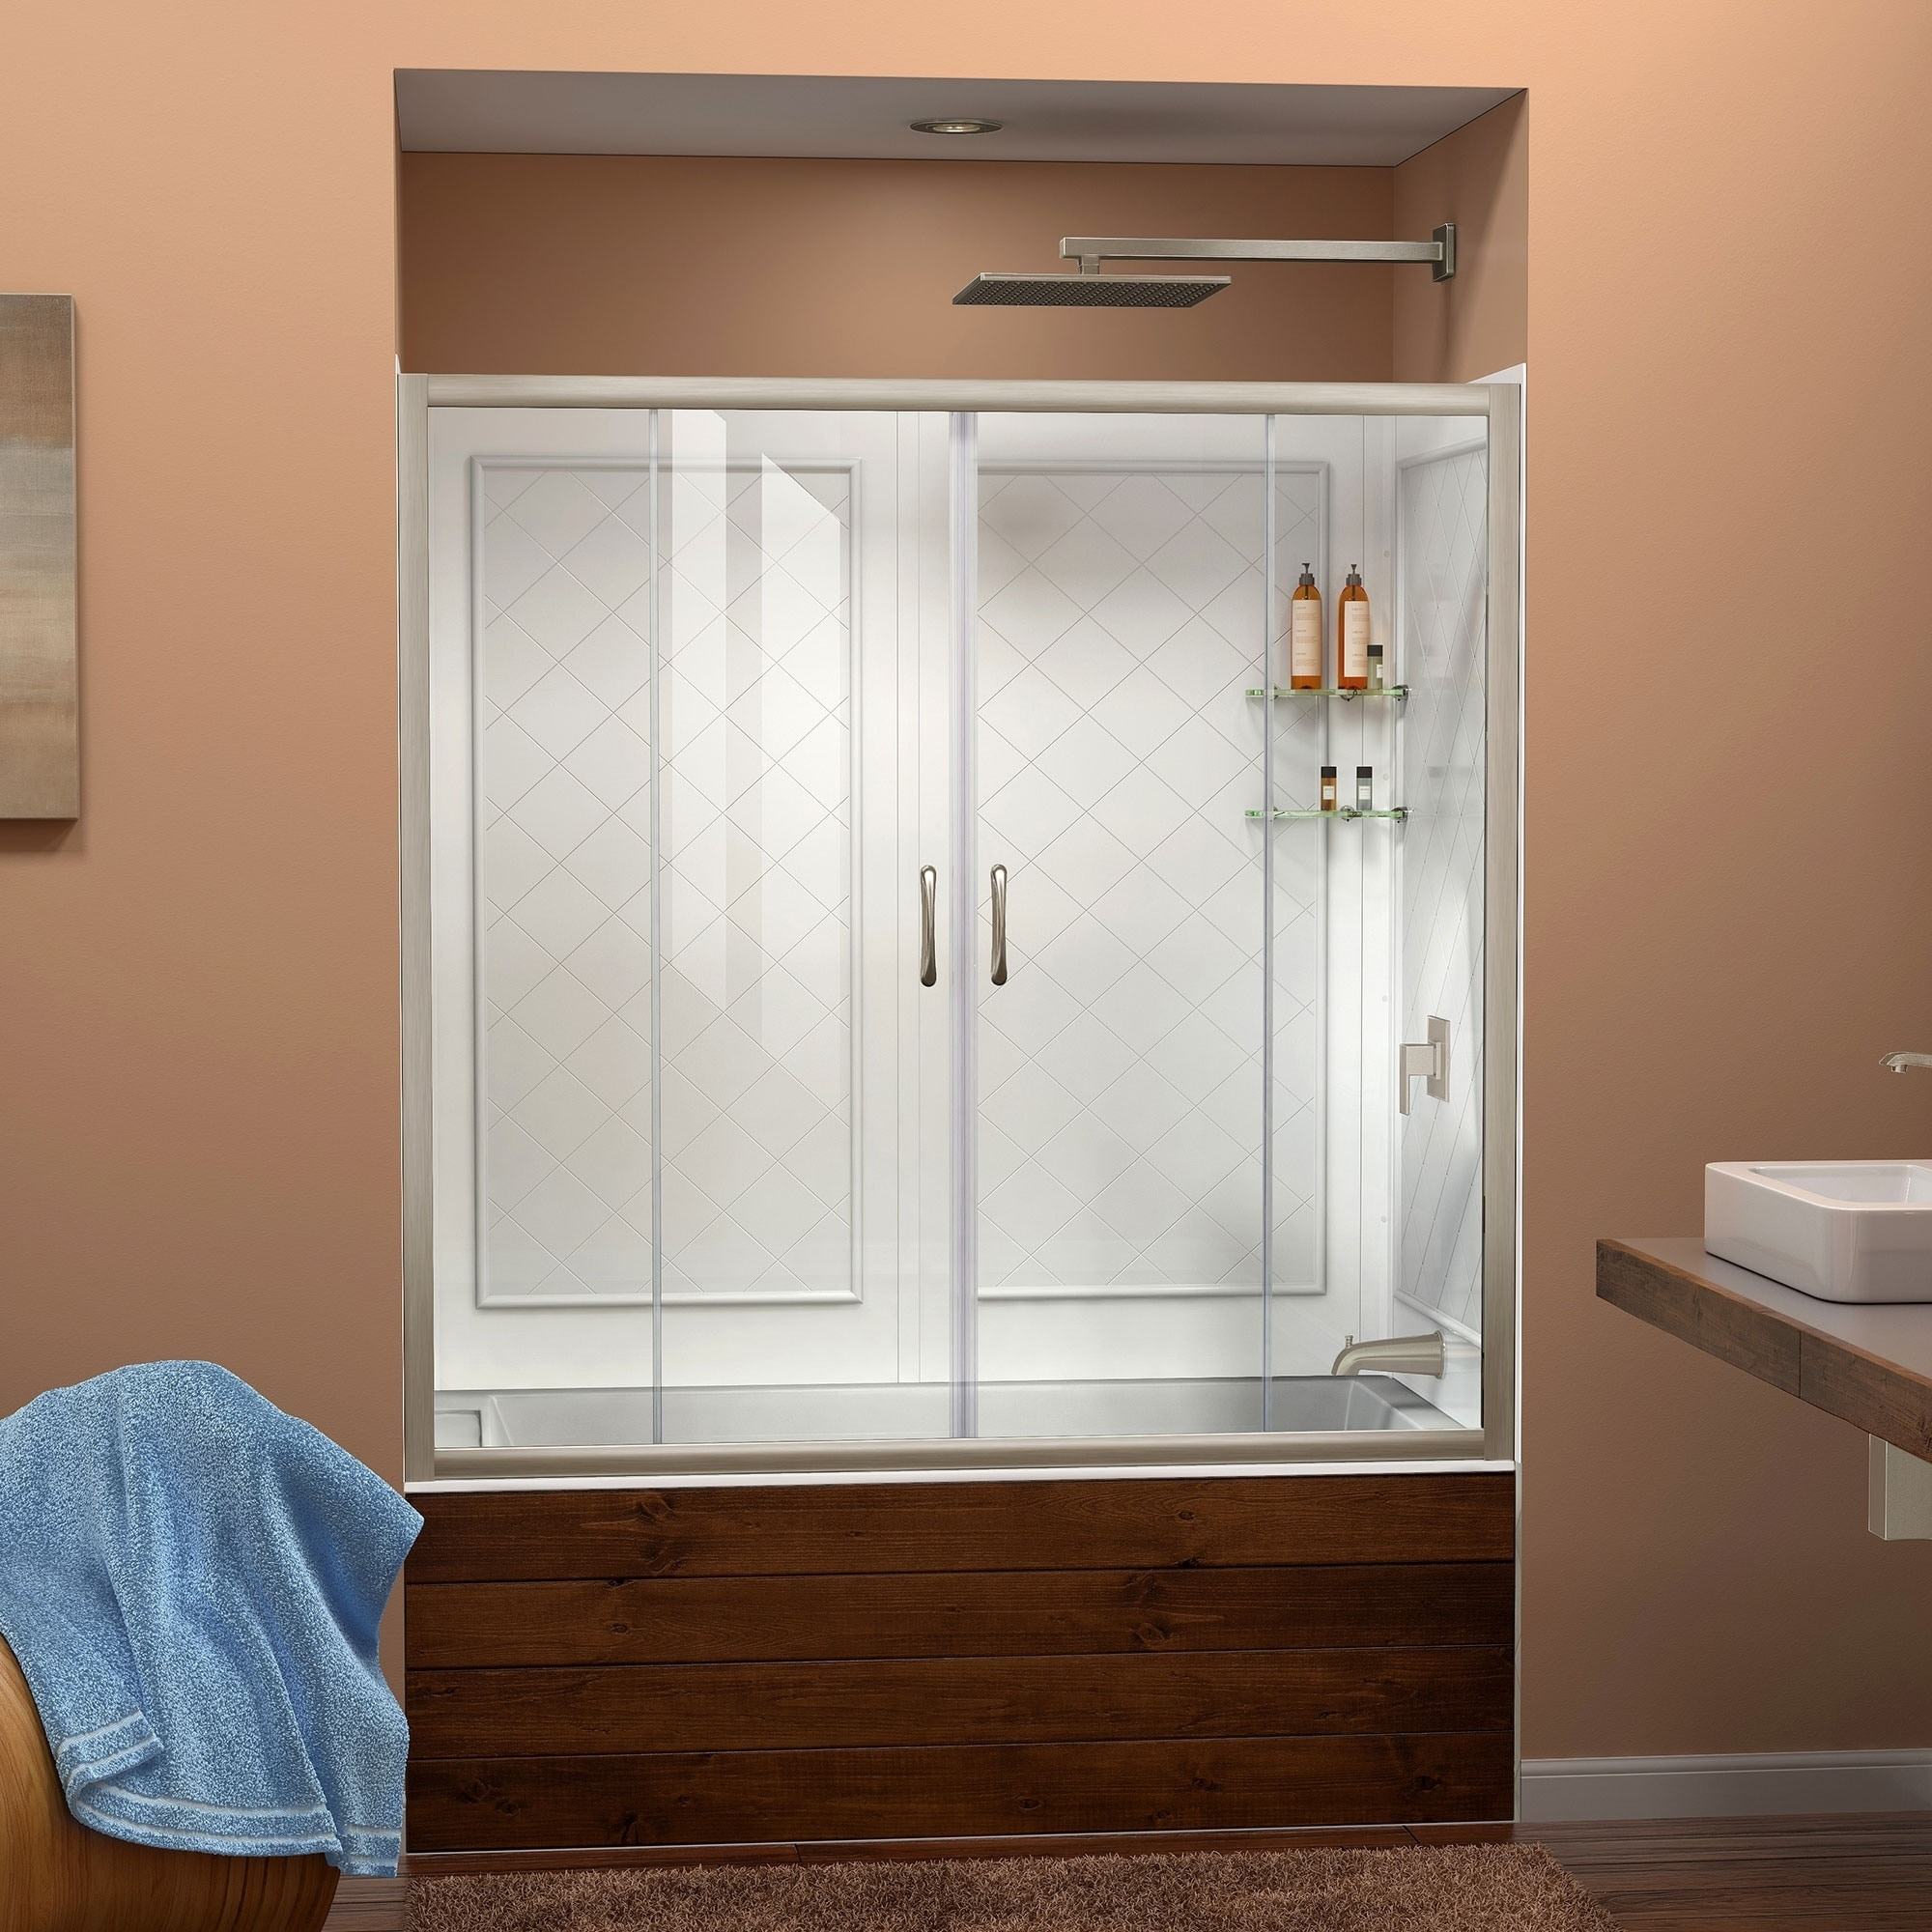 Shop Dreamline Visions 56 60 In W X 60 In H Sliding Tub Door And